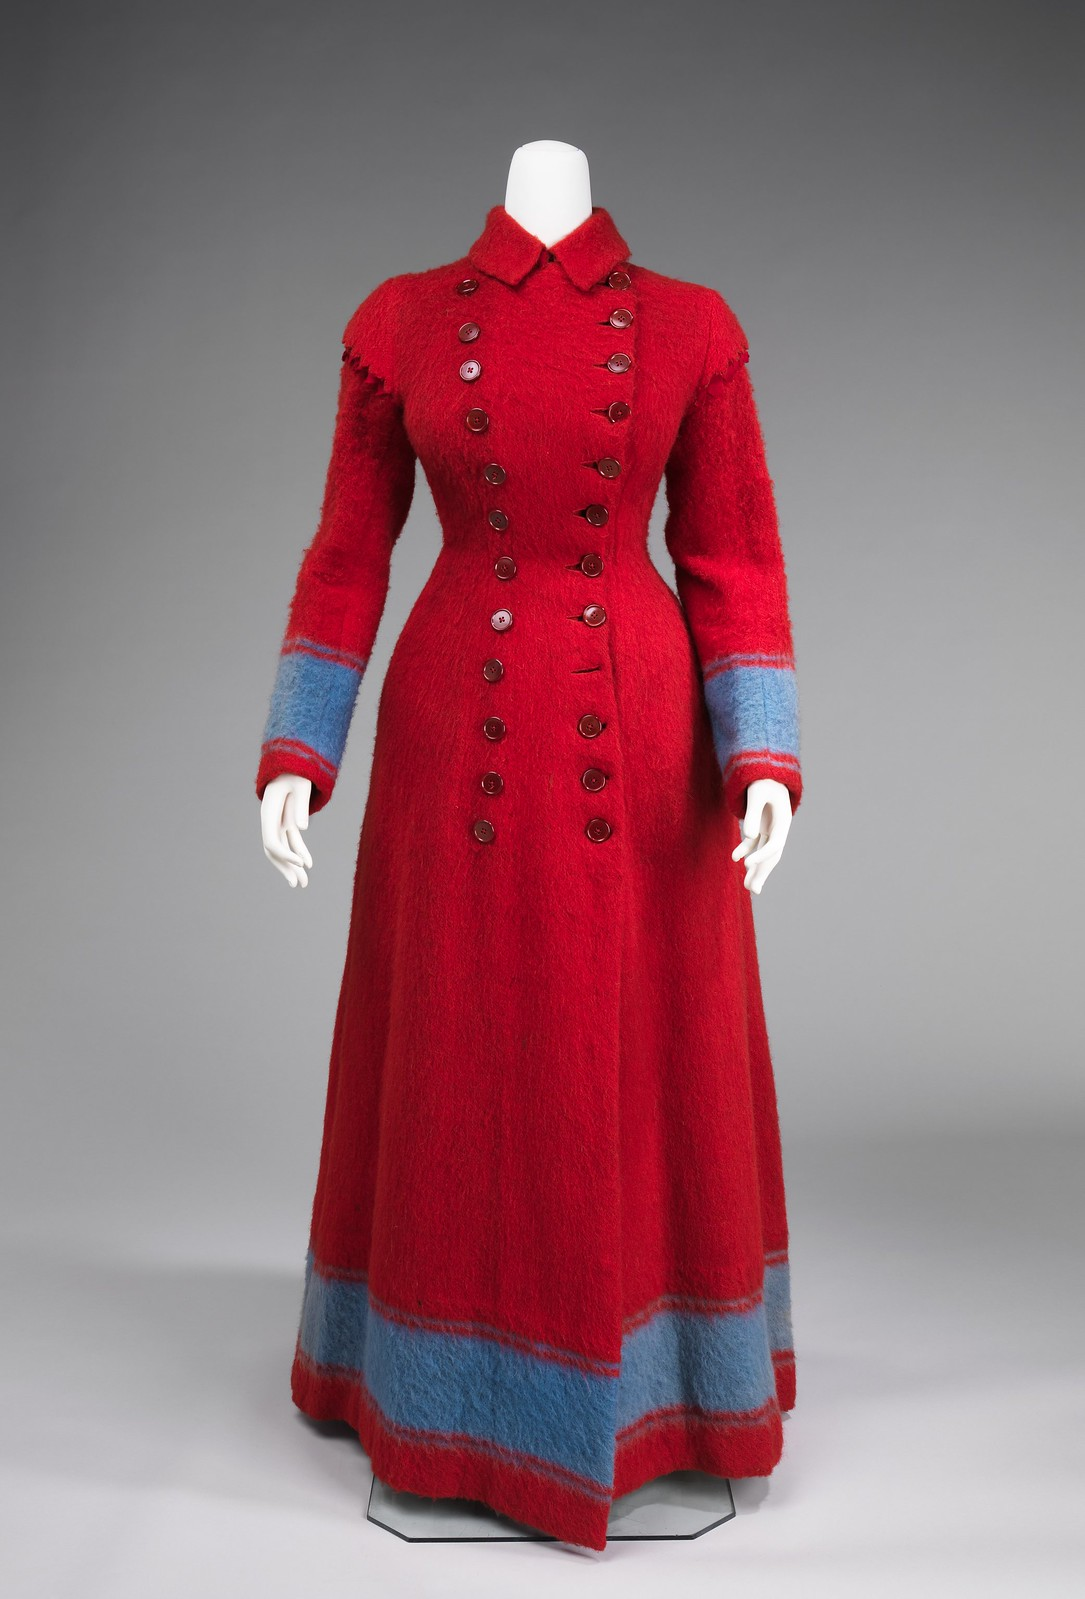 Dressing gown 1885–90 European wool, metmuseum